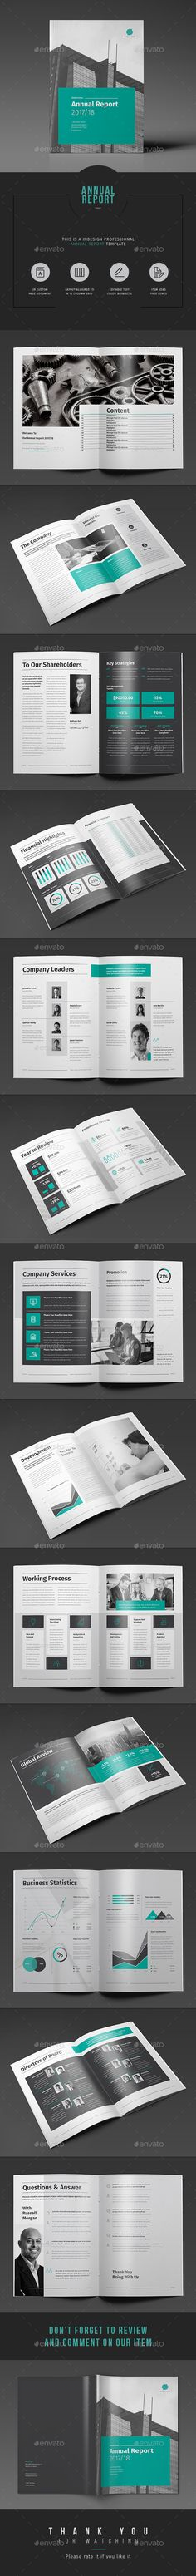 28 Pages INDESIGN Annual Report Template - Master Pages + 12 Grids Layout | Unlimited Color Variations | Free Fonts + IDML Version Available | Download https://graphicriver.net/item/annual-report/17865555?ref=themedevisers